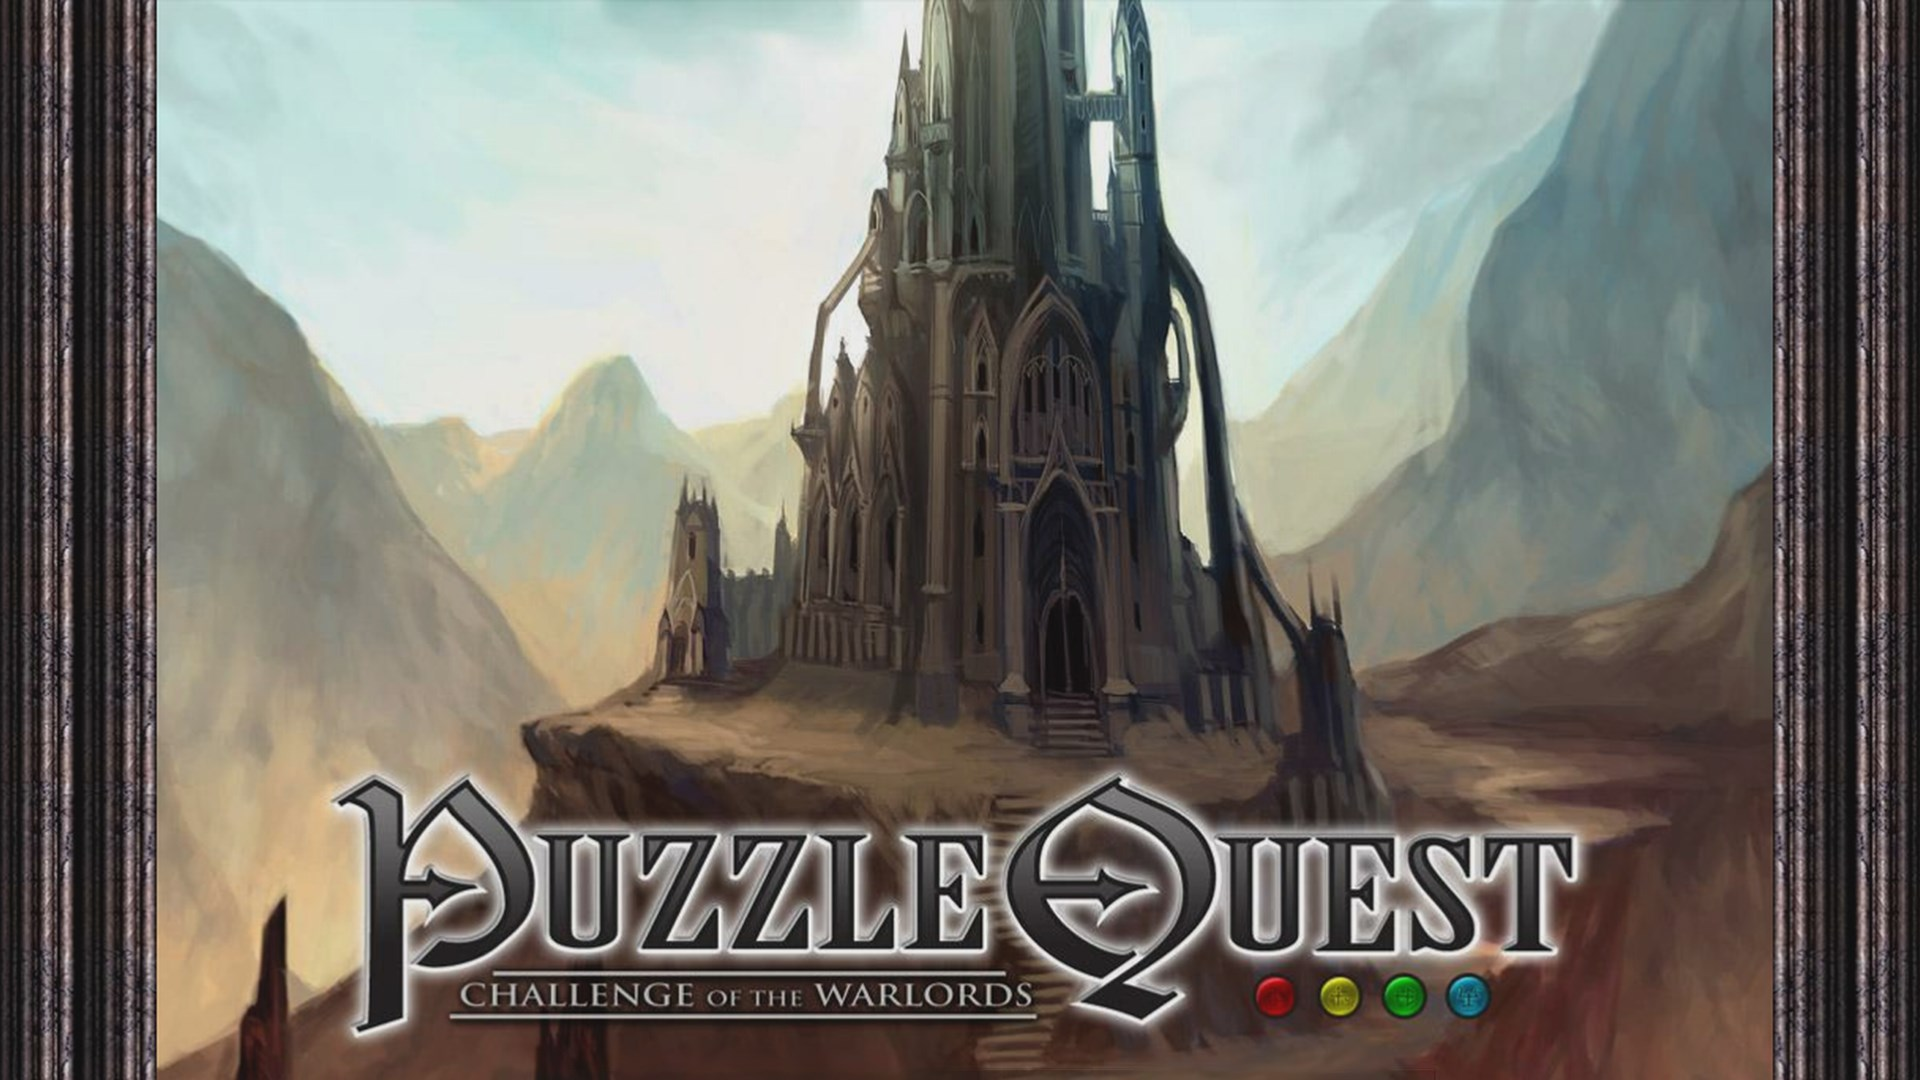 Puzzle Quest 3 announced by 505 Games